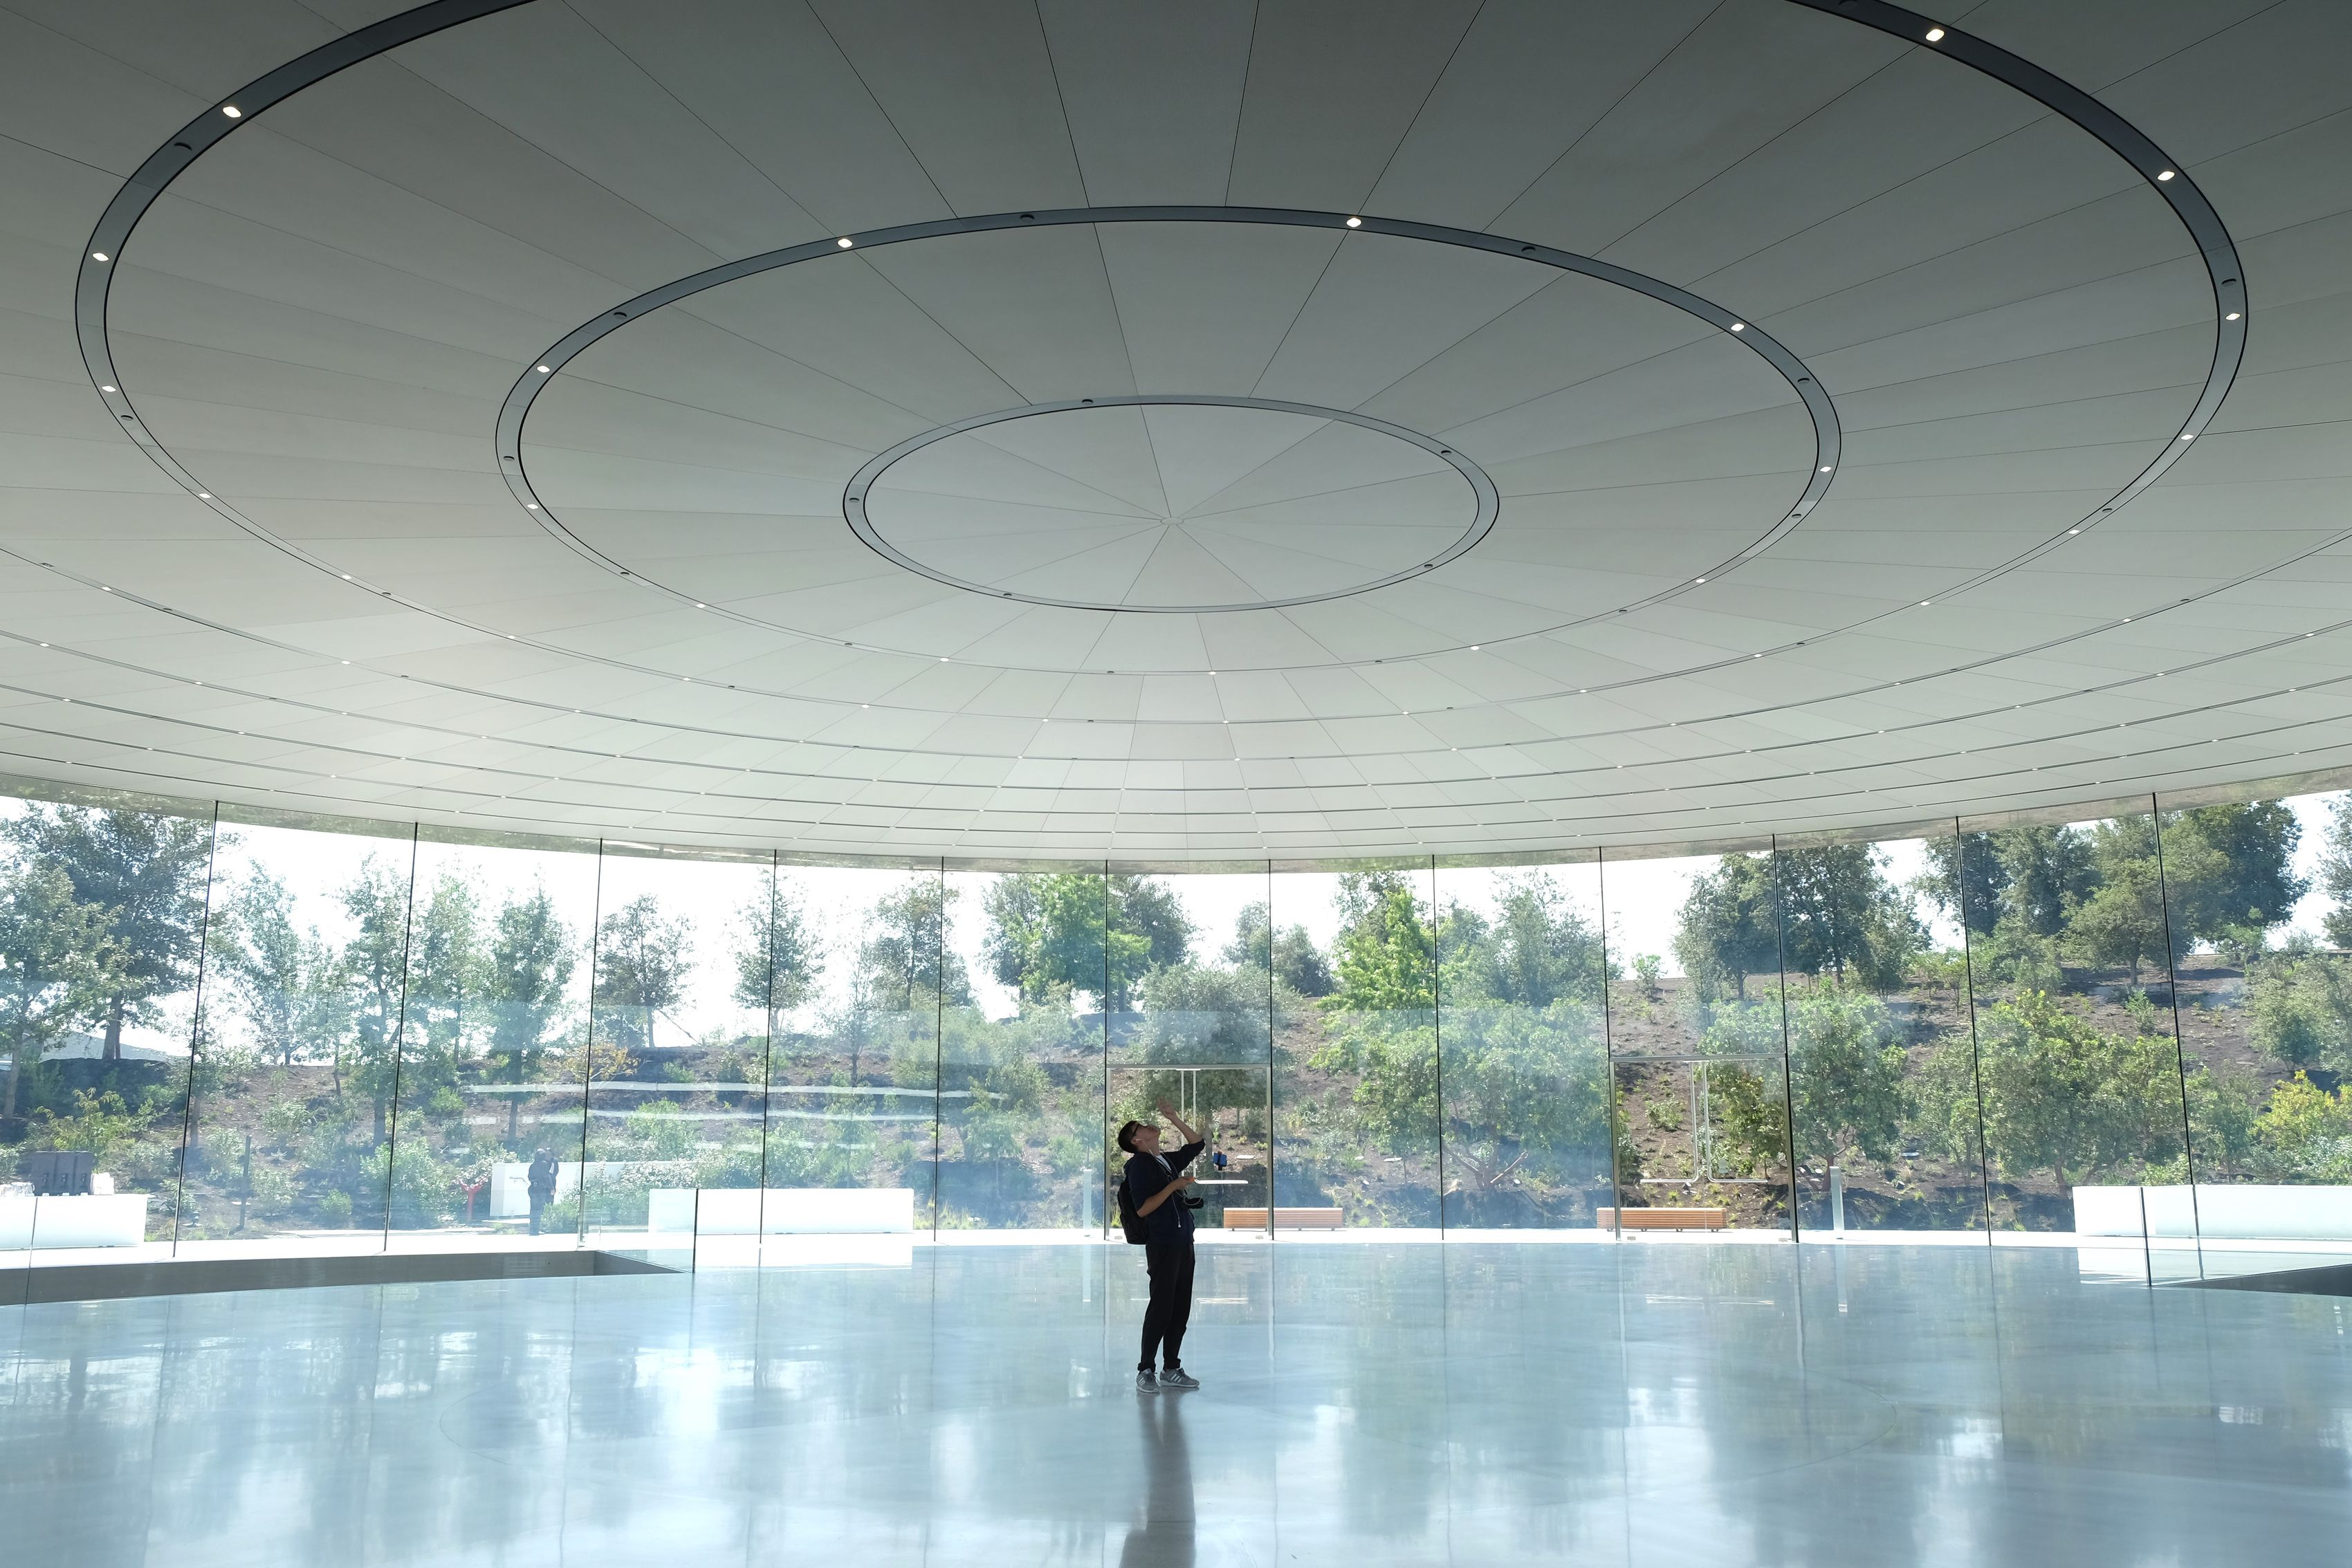 Steve Jobs Theater por dentro